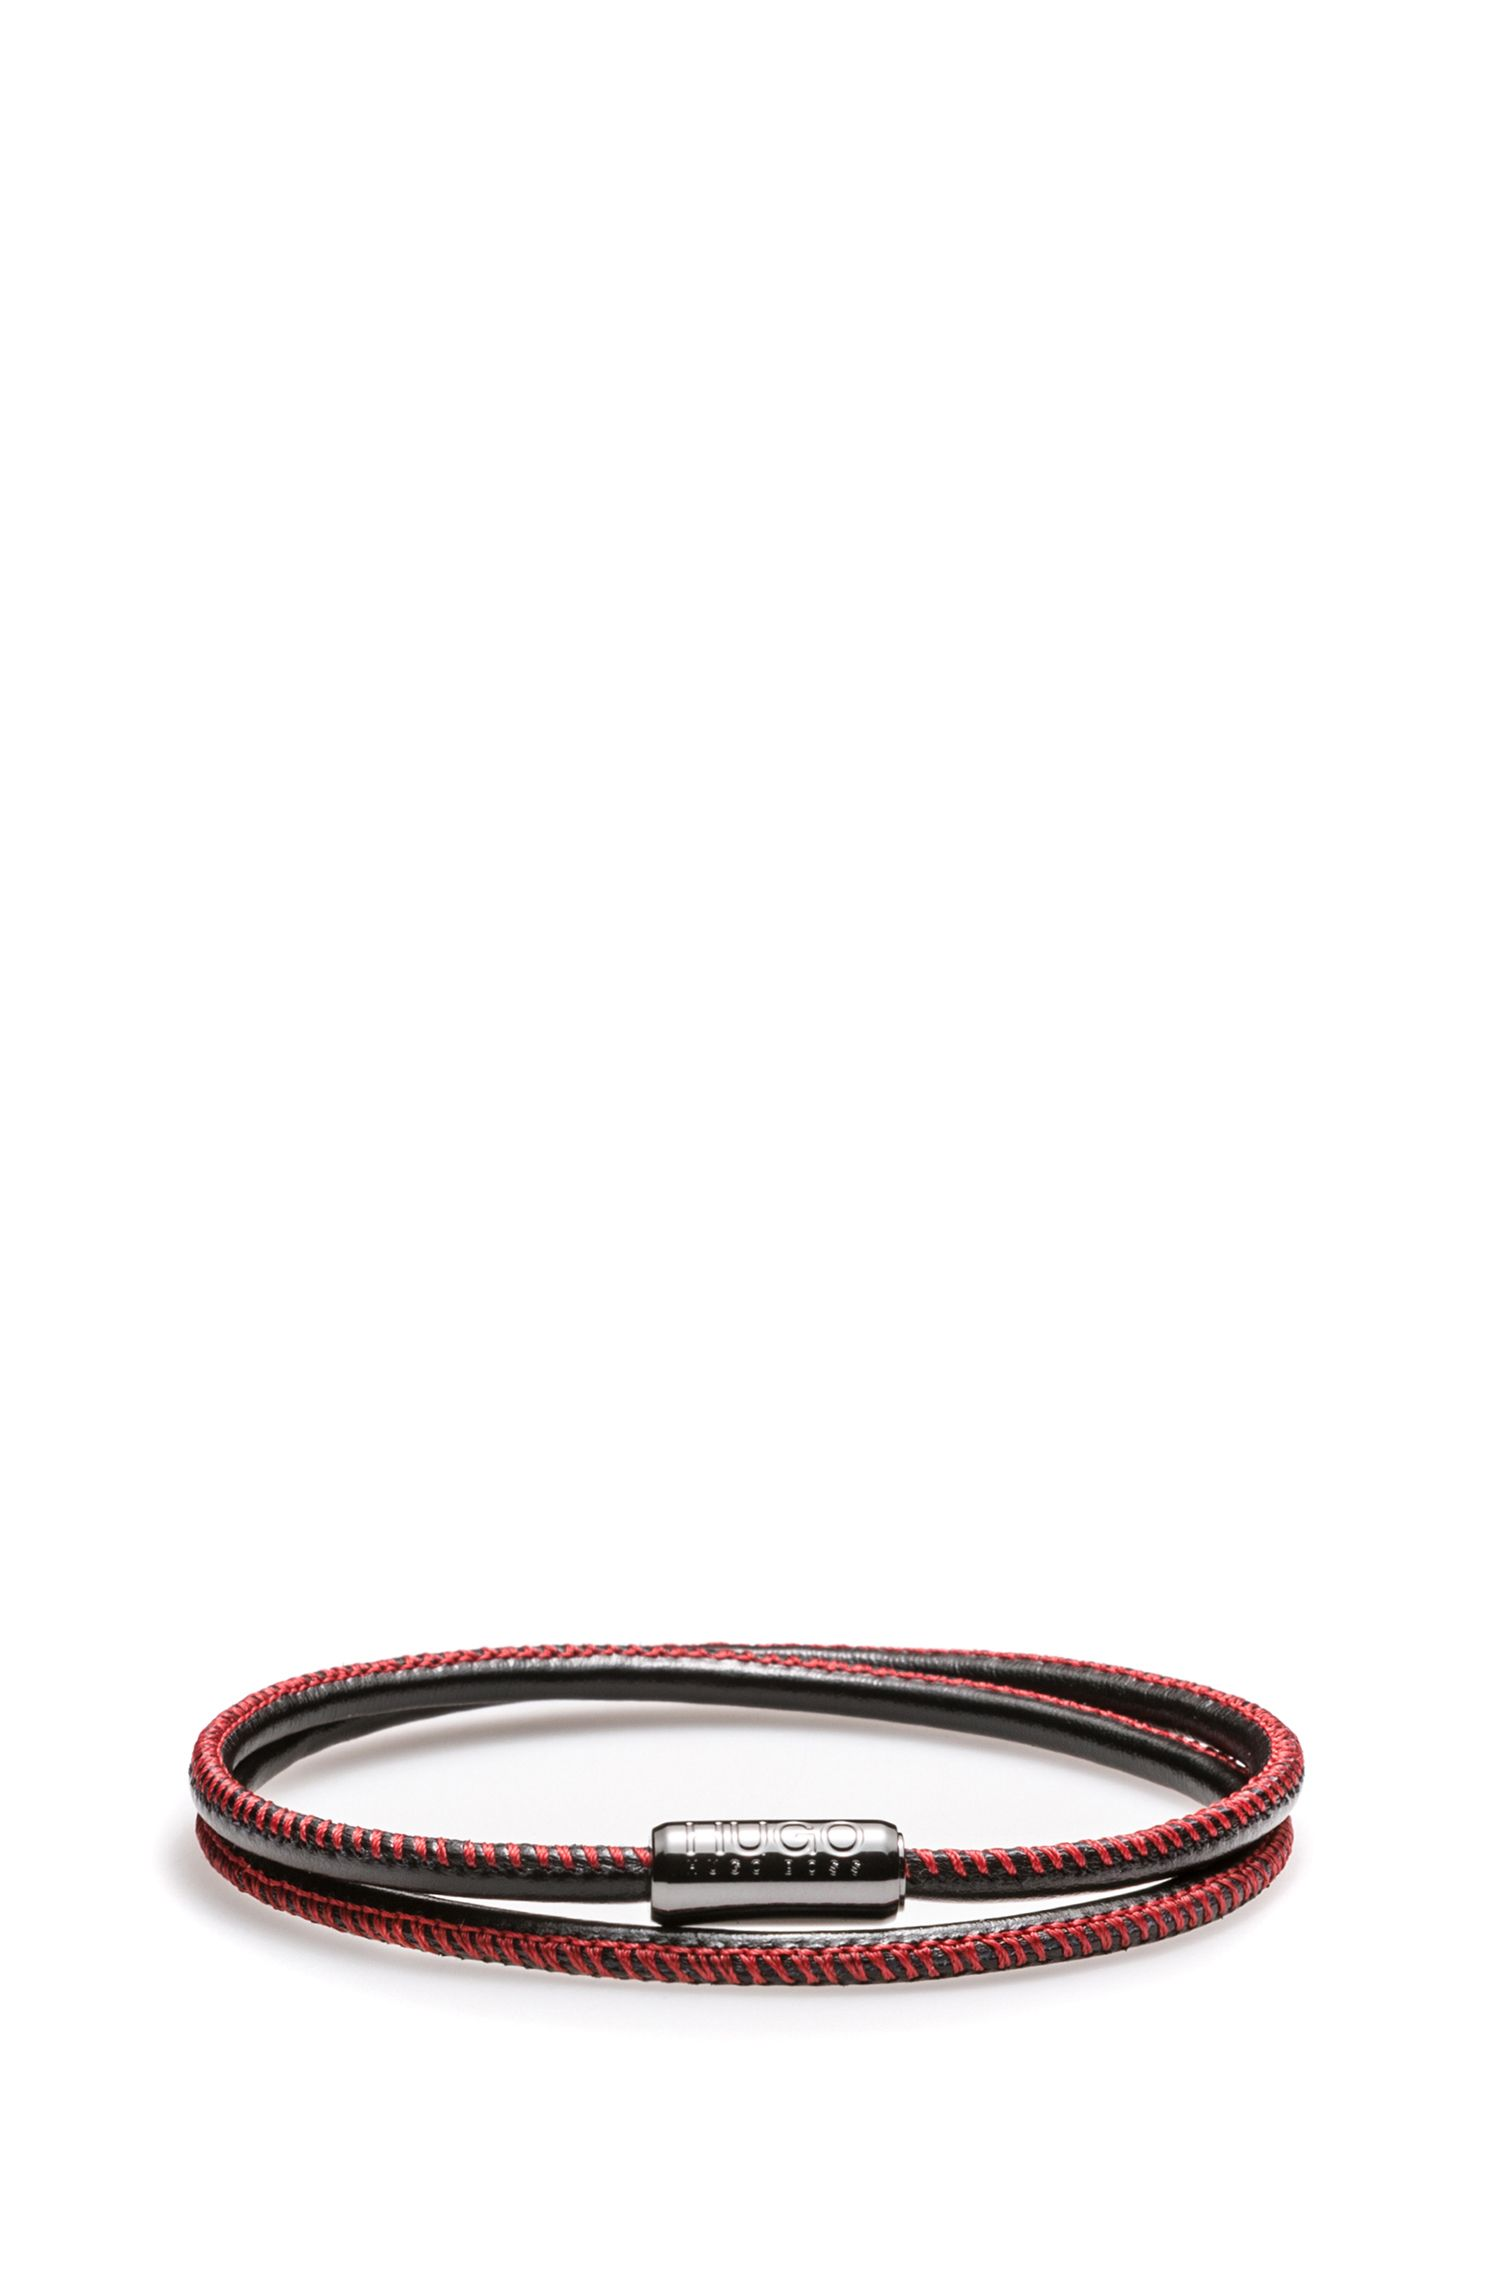 Italian calf-leather bracelet with magnetic closure